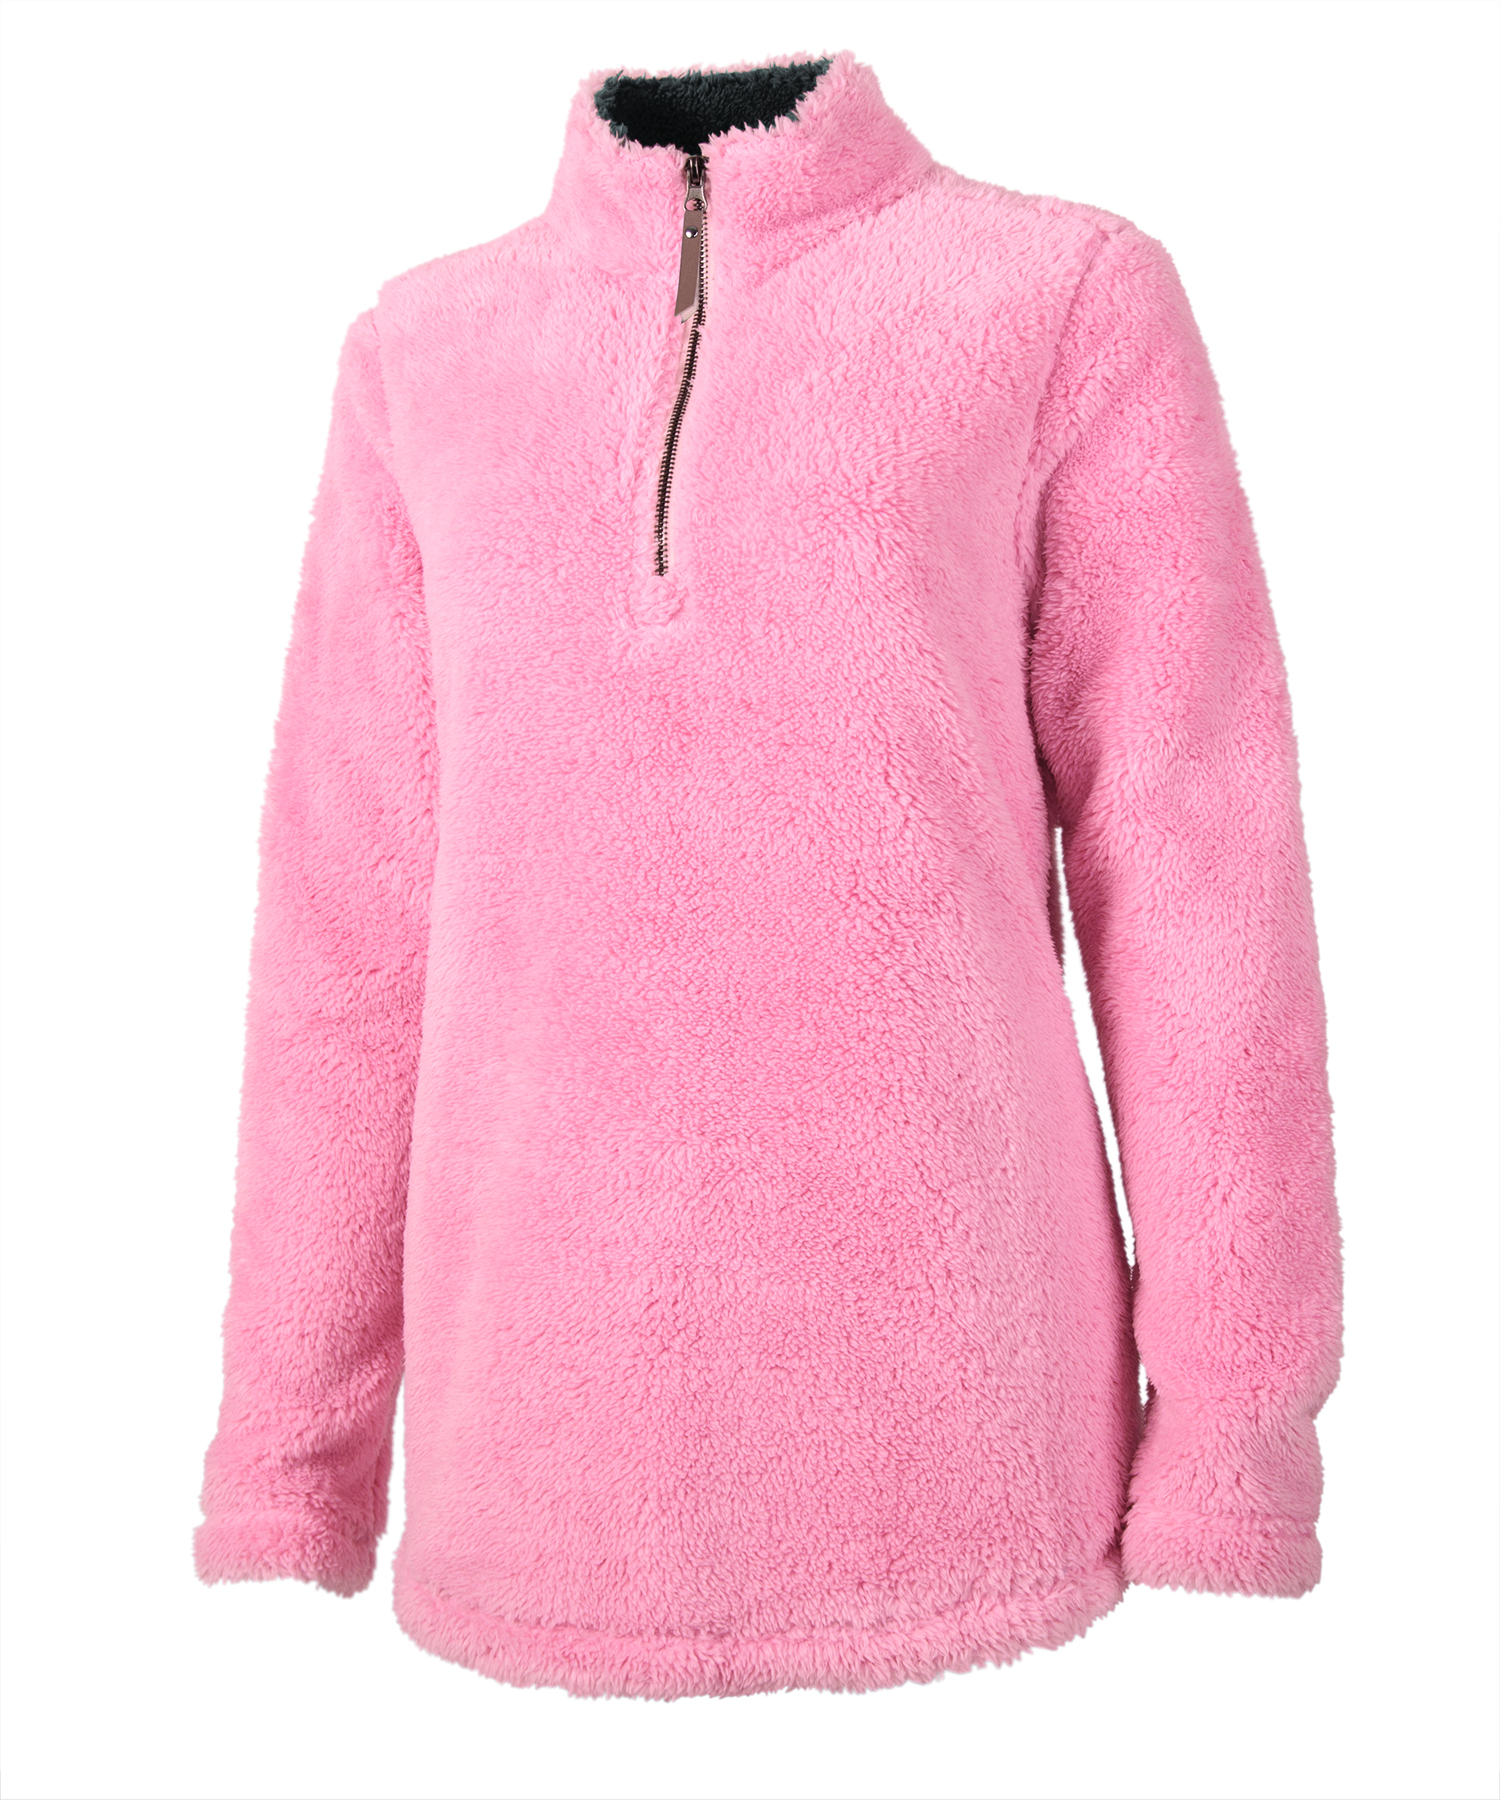 5876 Ladies Newport Fleece   Powder Pink